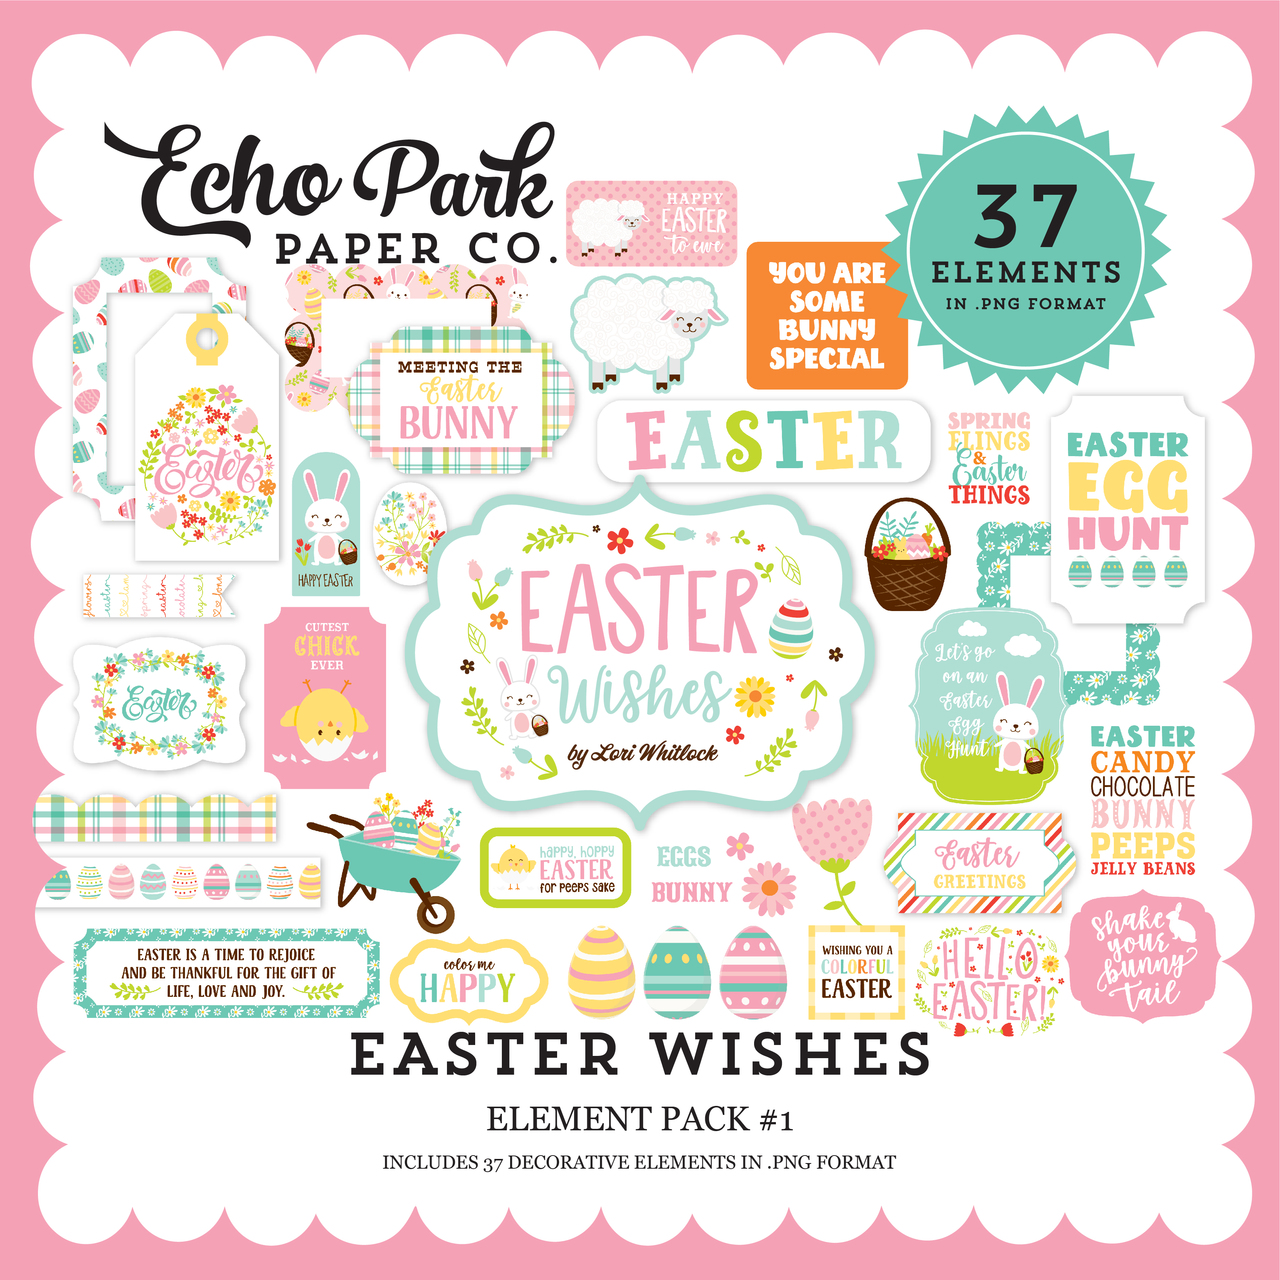 Easter Wishes Element Pack #1